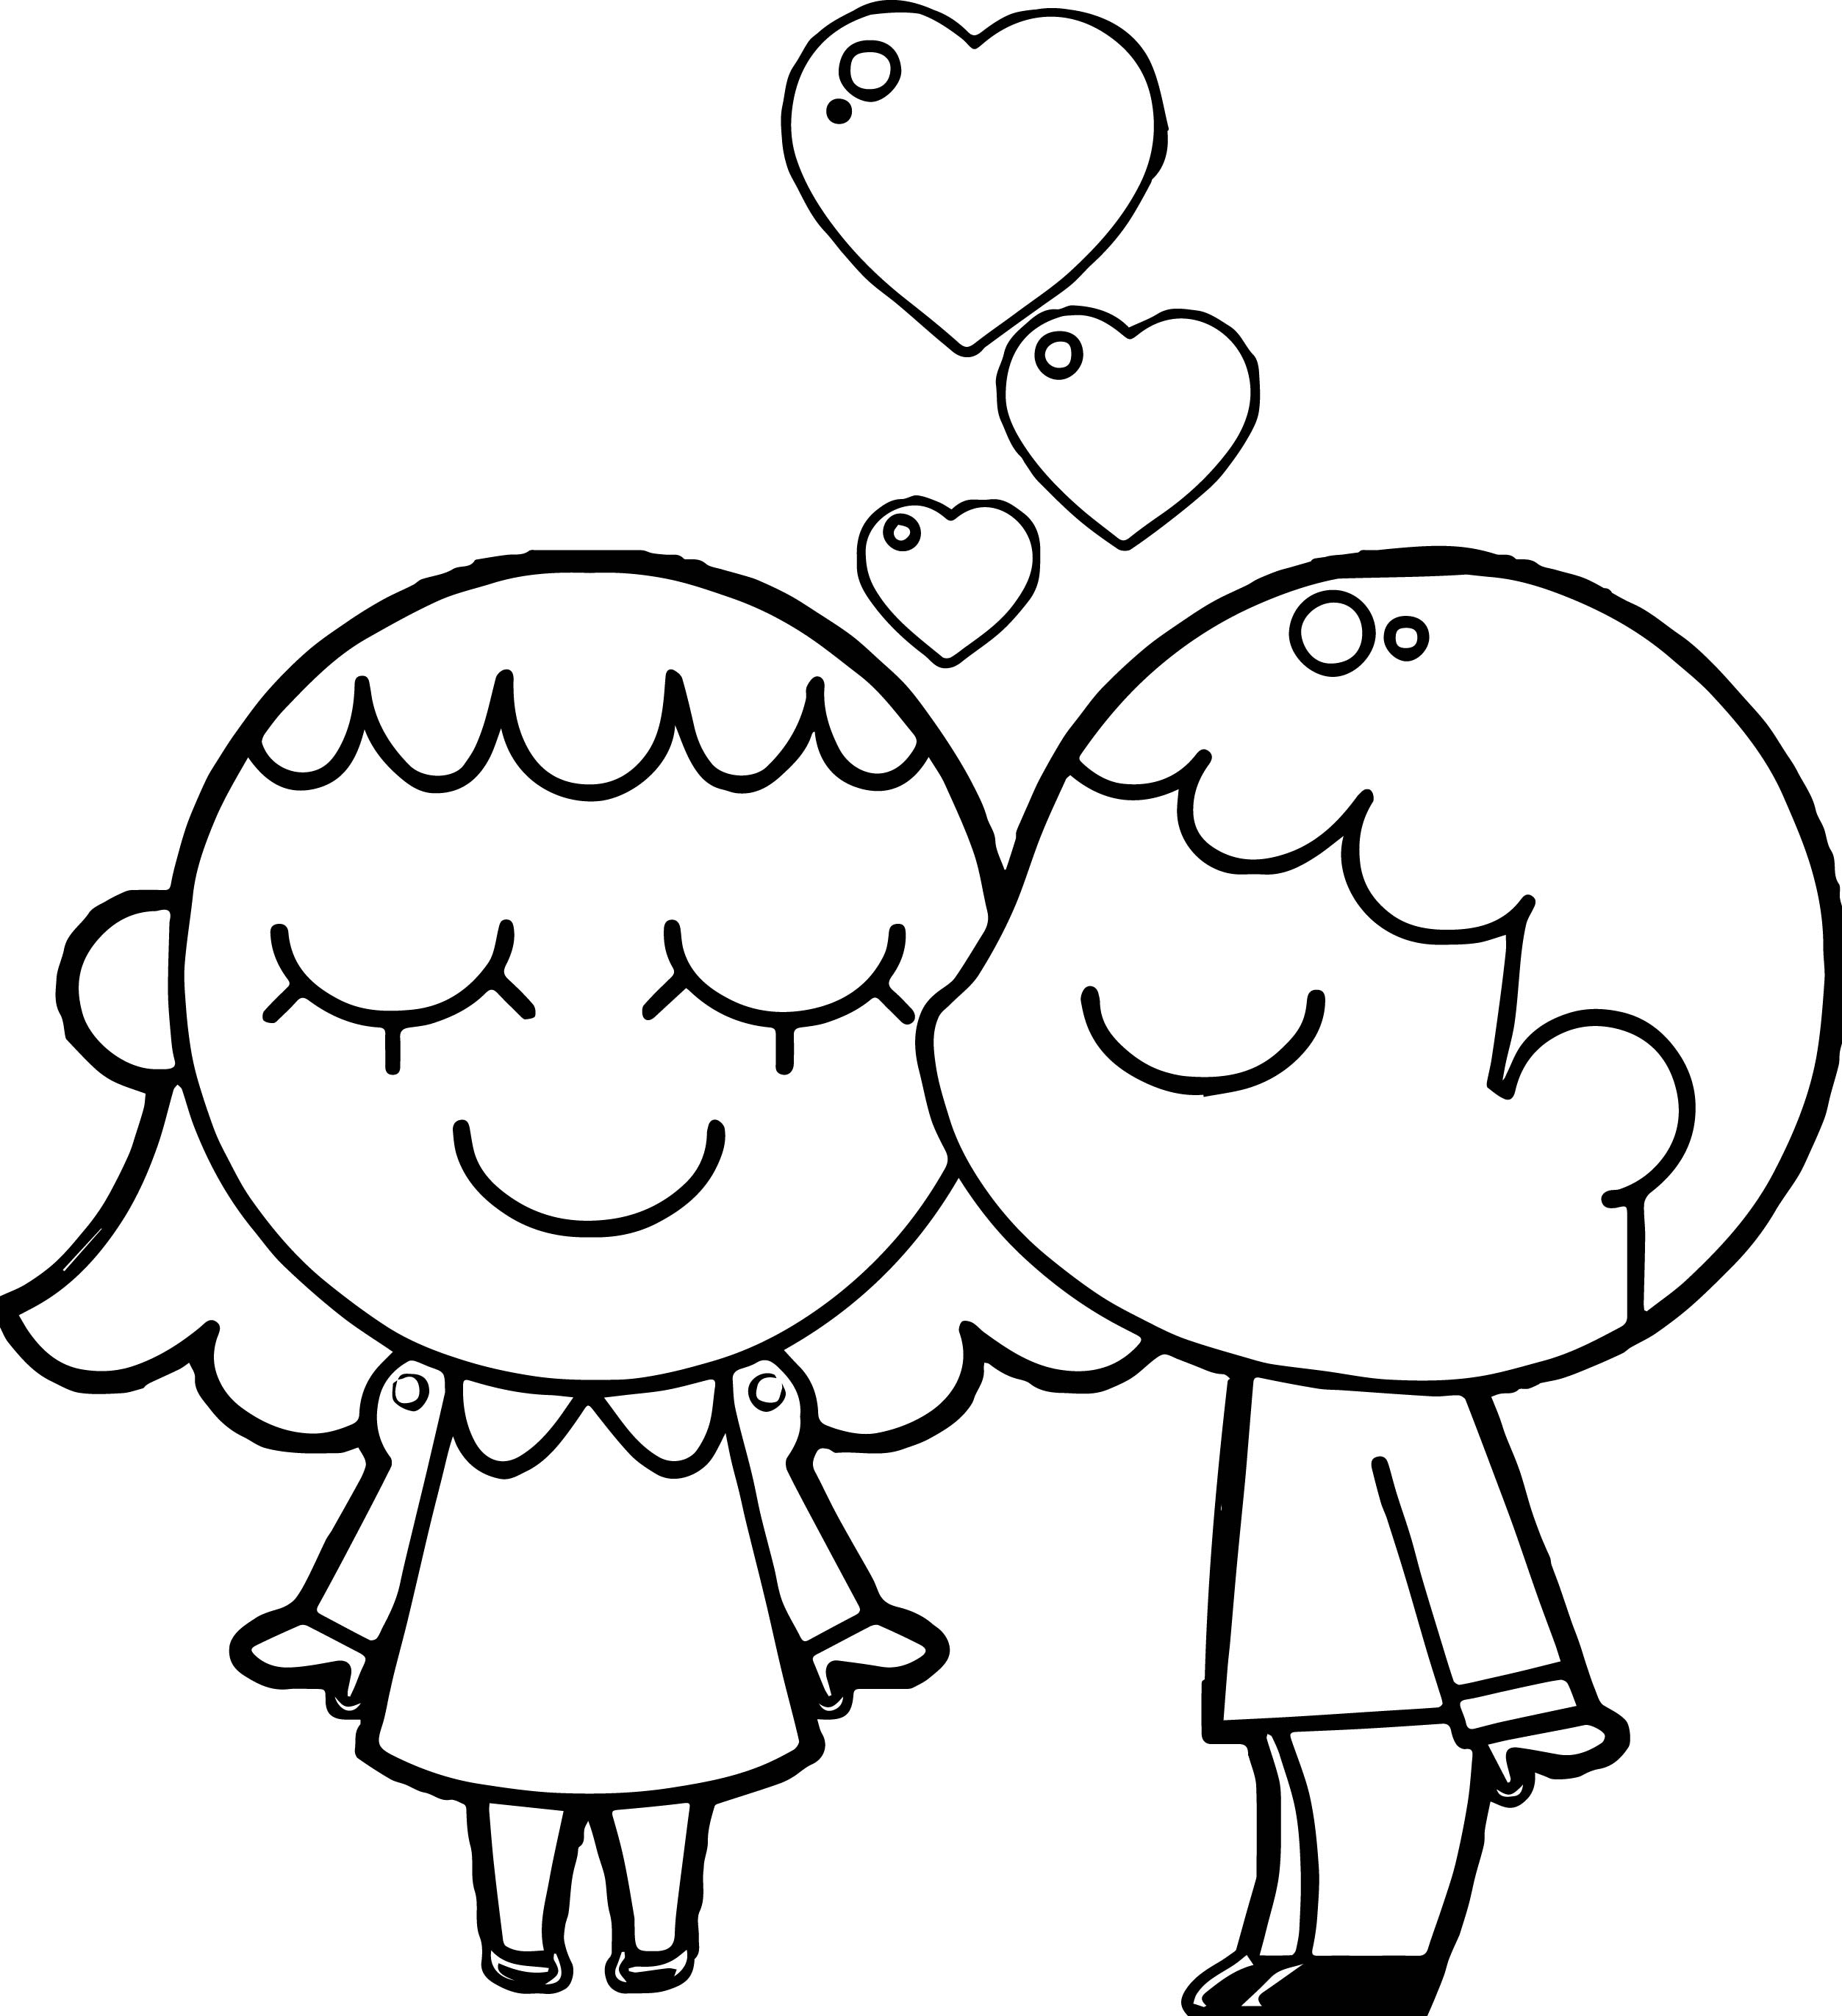 Best friends boy and girl coloring page for Coloring pages girl and boy